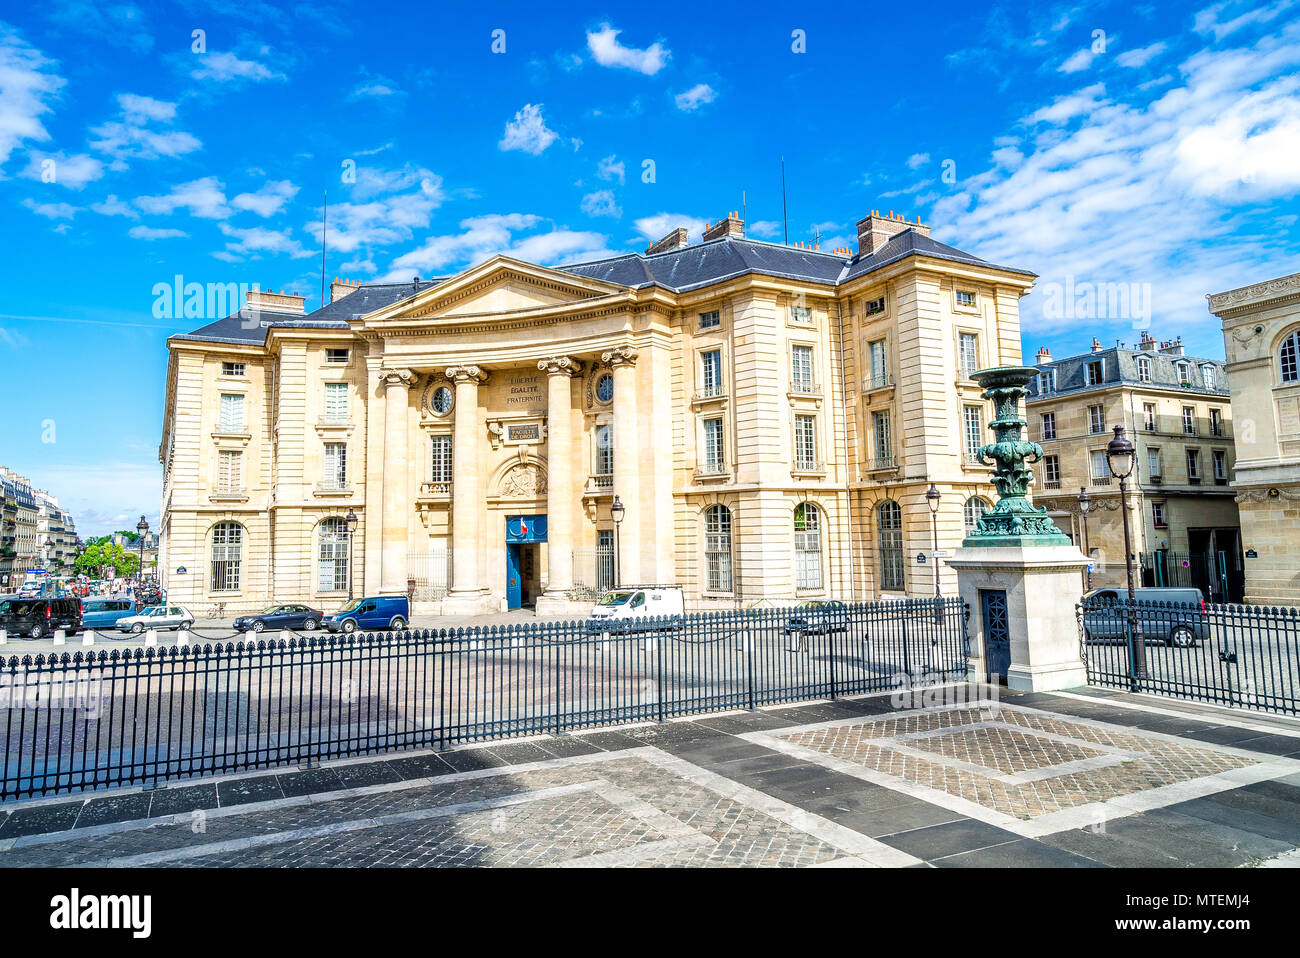 The town hall of the 5th arrondissement in Paris, France - Stock Image